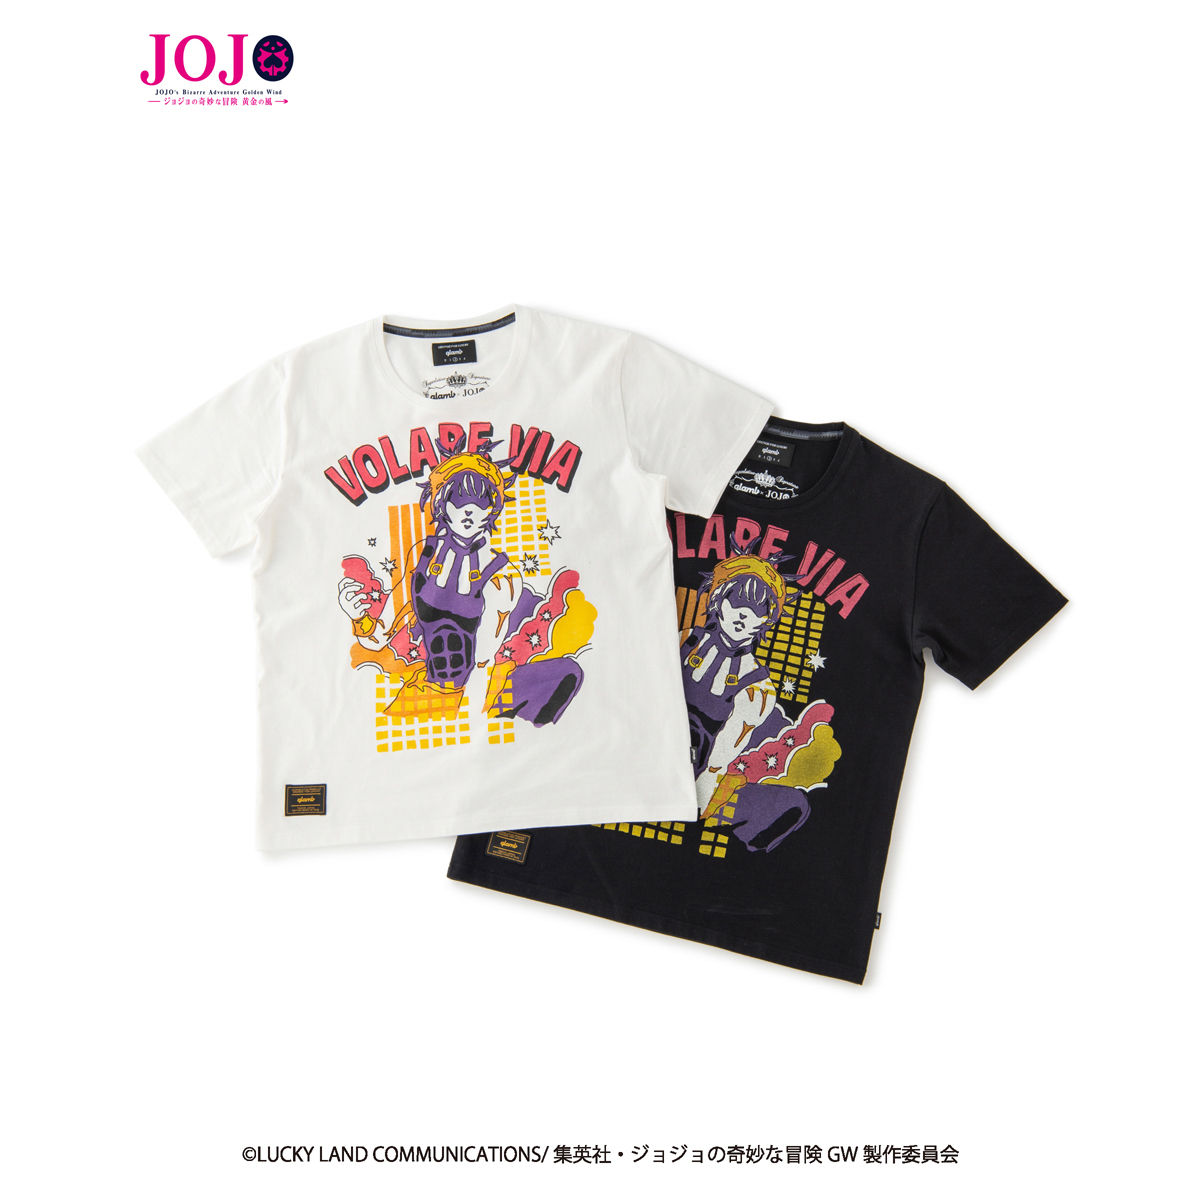 JoJo's Bizarre Adventure: Golden Wind × glamb collaboration